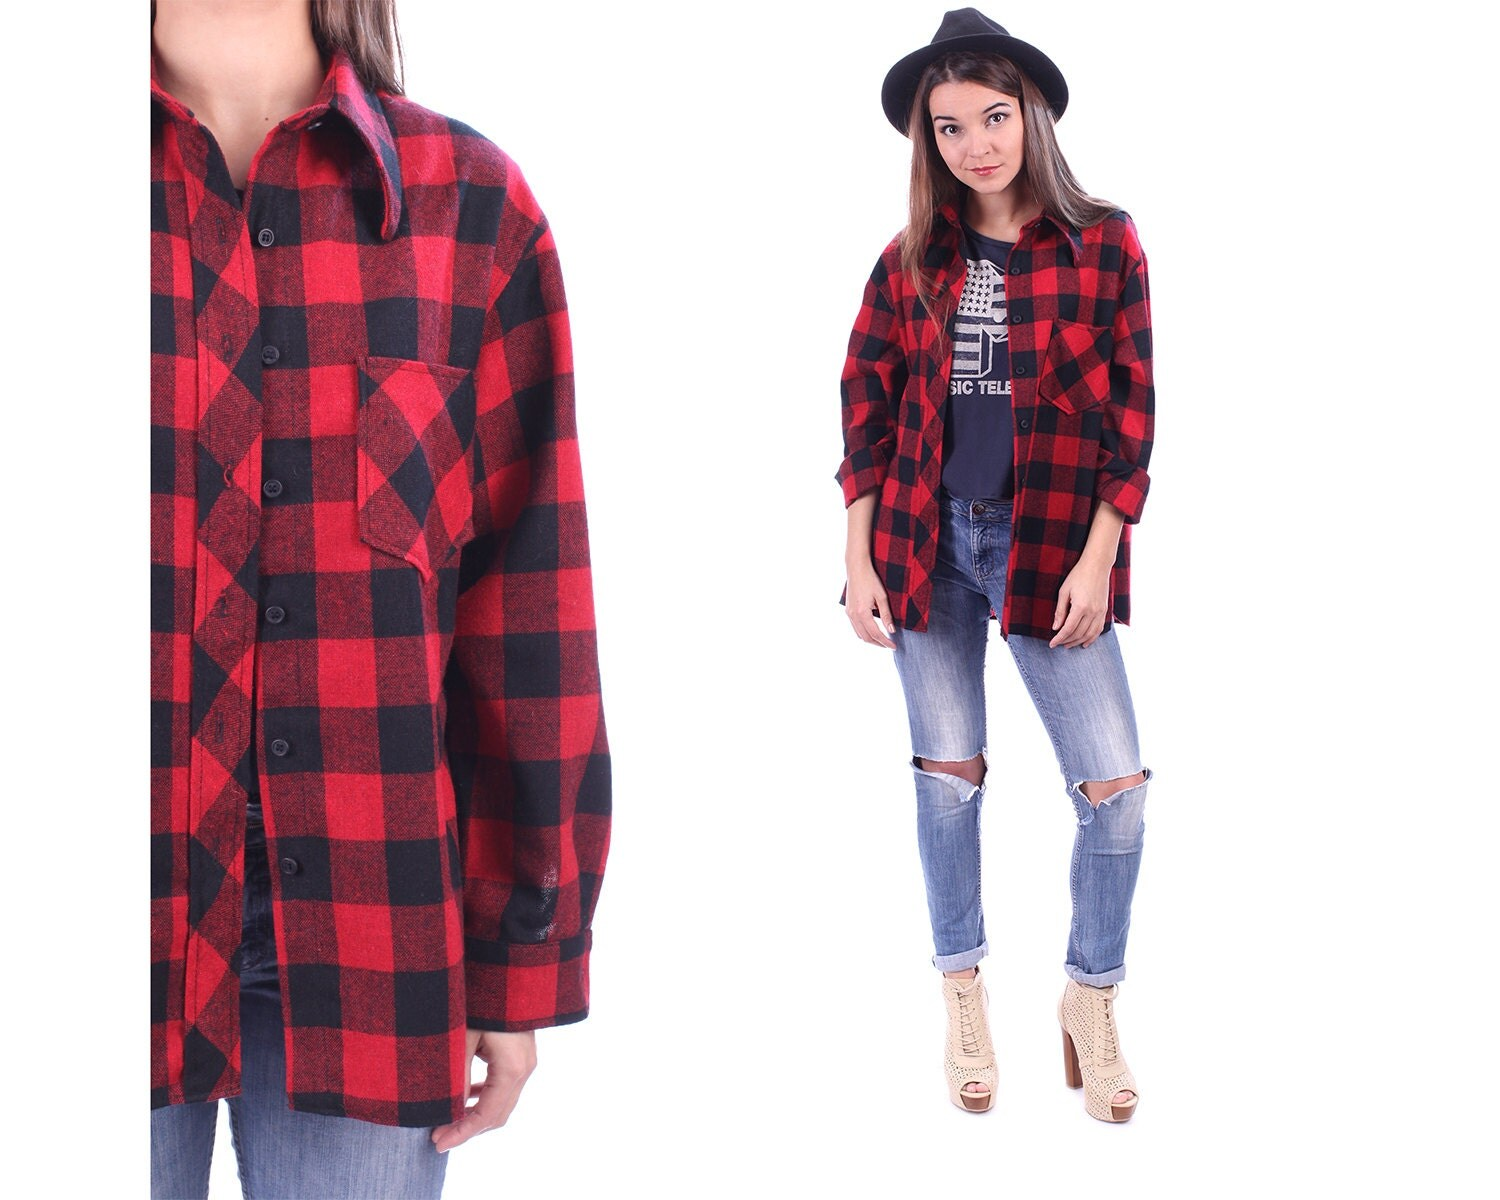 Buffalo plaid flannel wool mens shirt 70s grunge red black for Red black and white flannel shirt